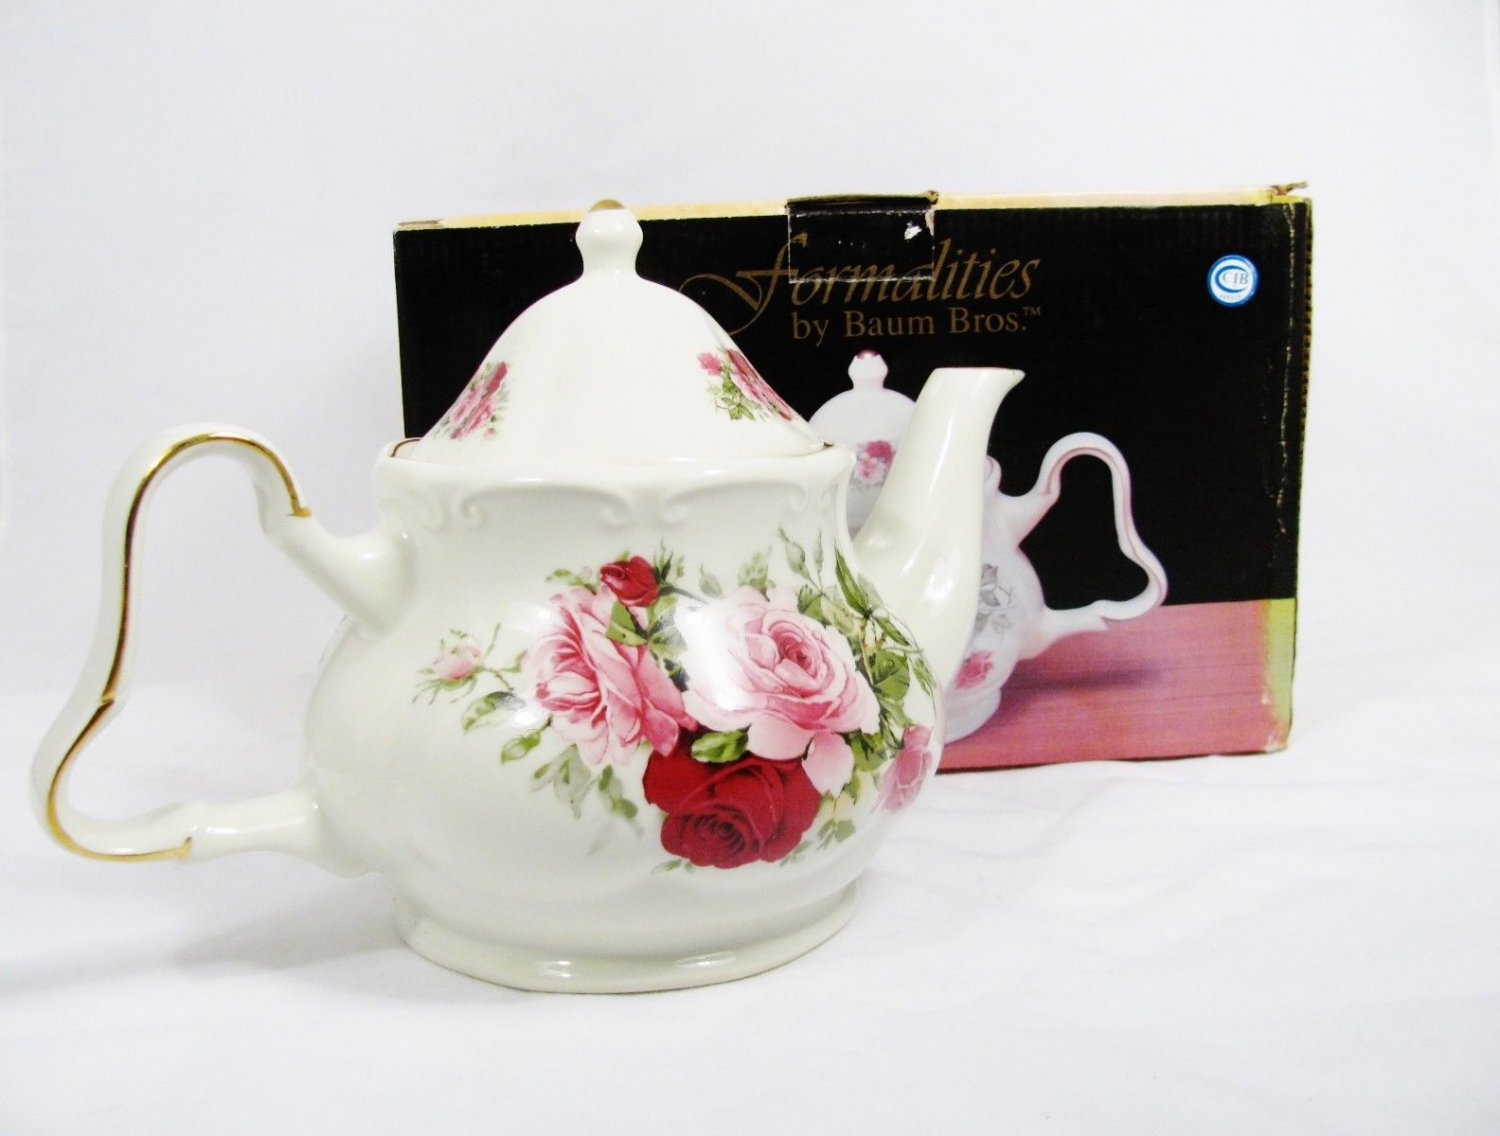 FORMALITIES by BAUM BROS Victorian Rose Teapot Pink & Red Gold Trim 5 Cup w/ Box Fast Free Ship